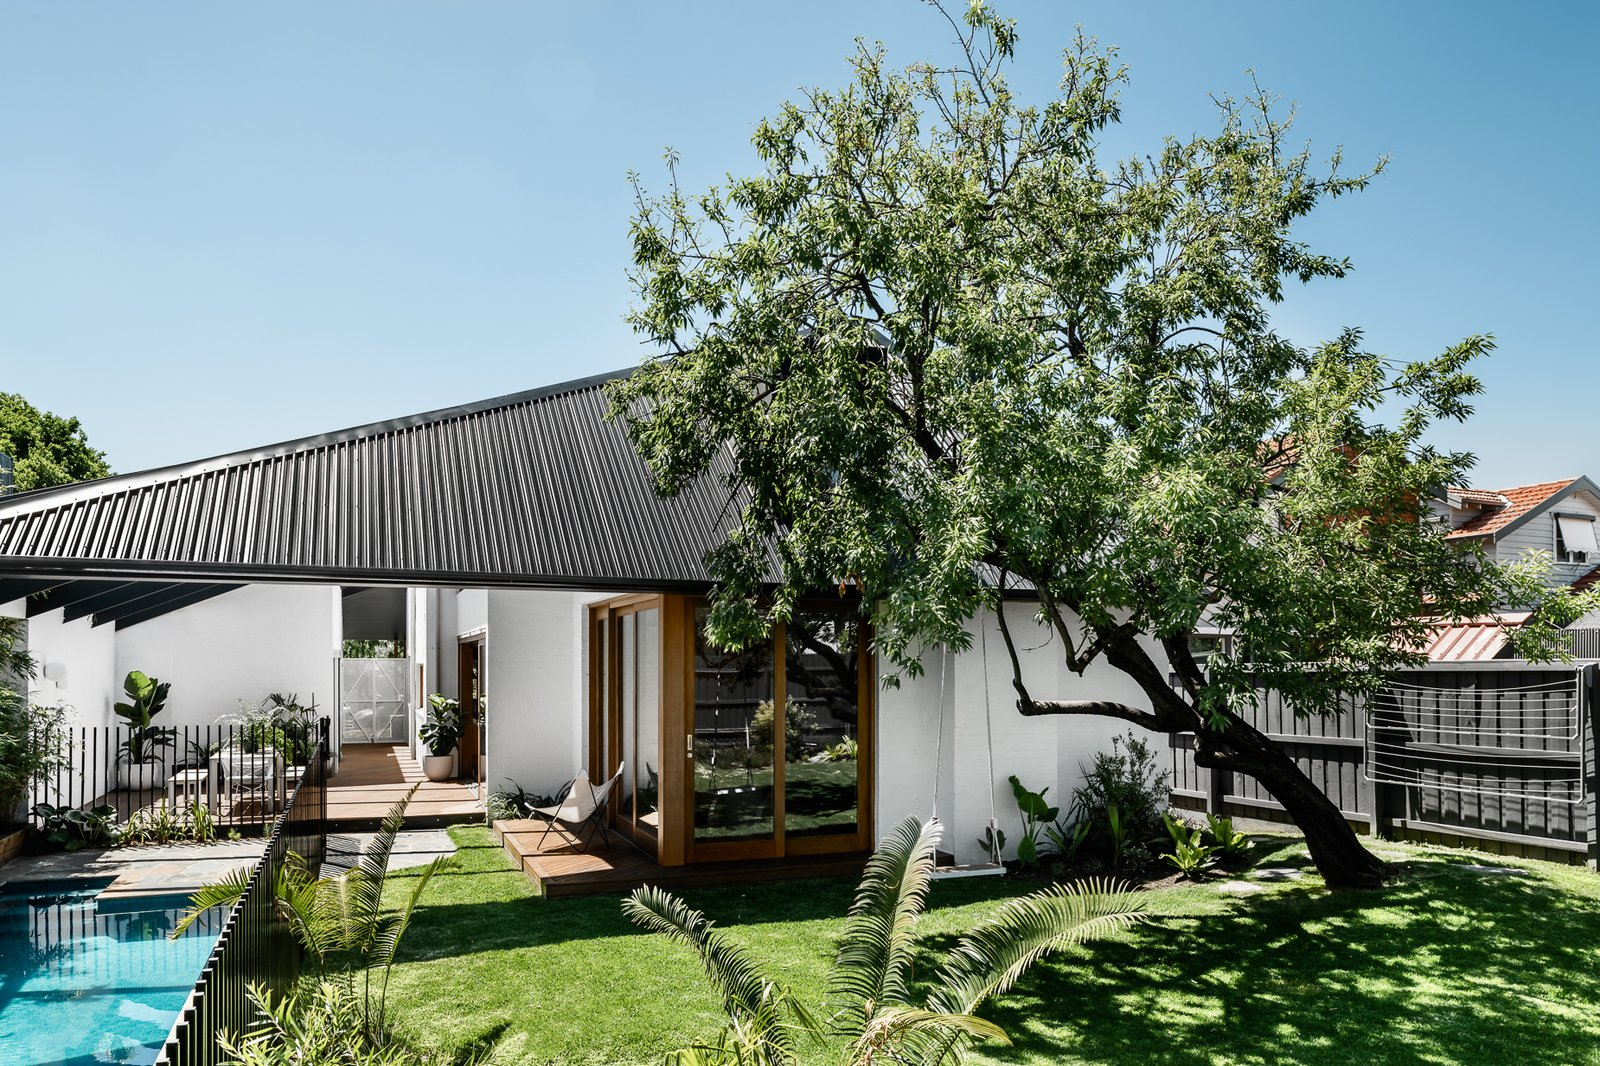 This Breezy Australian Bungalow Caters to a Family's Evolving Needs